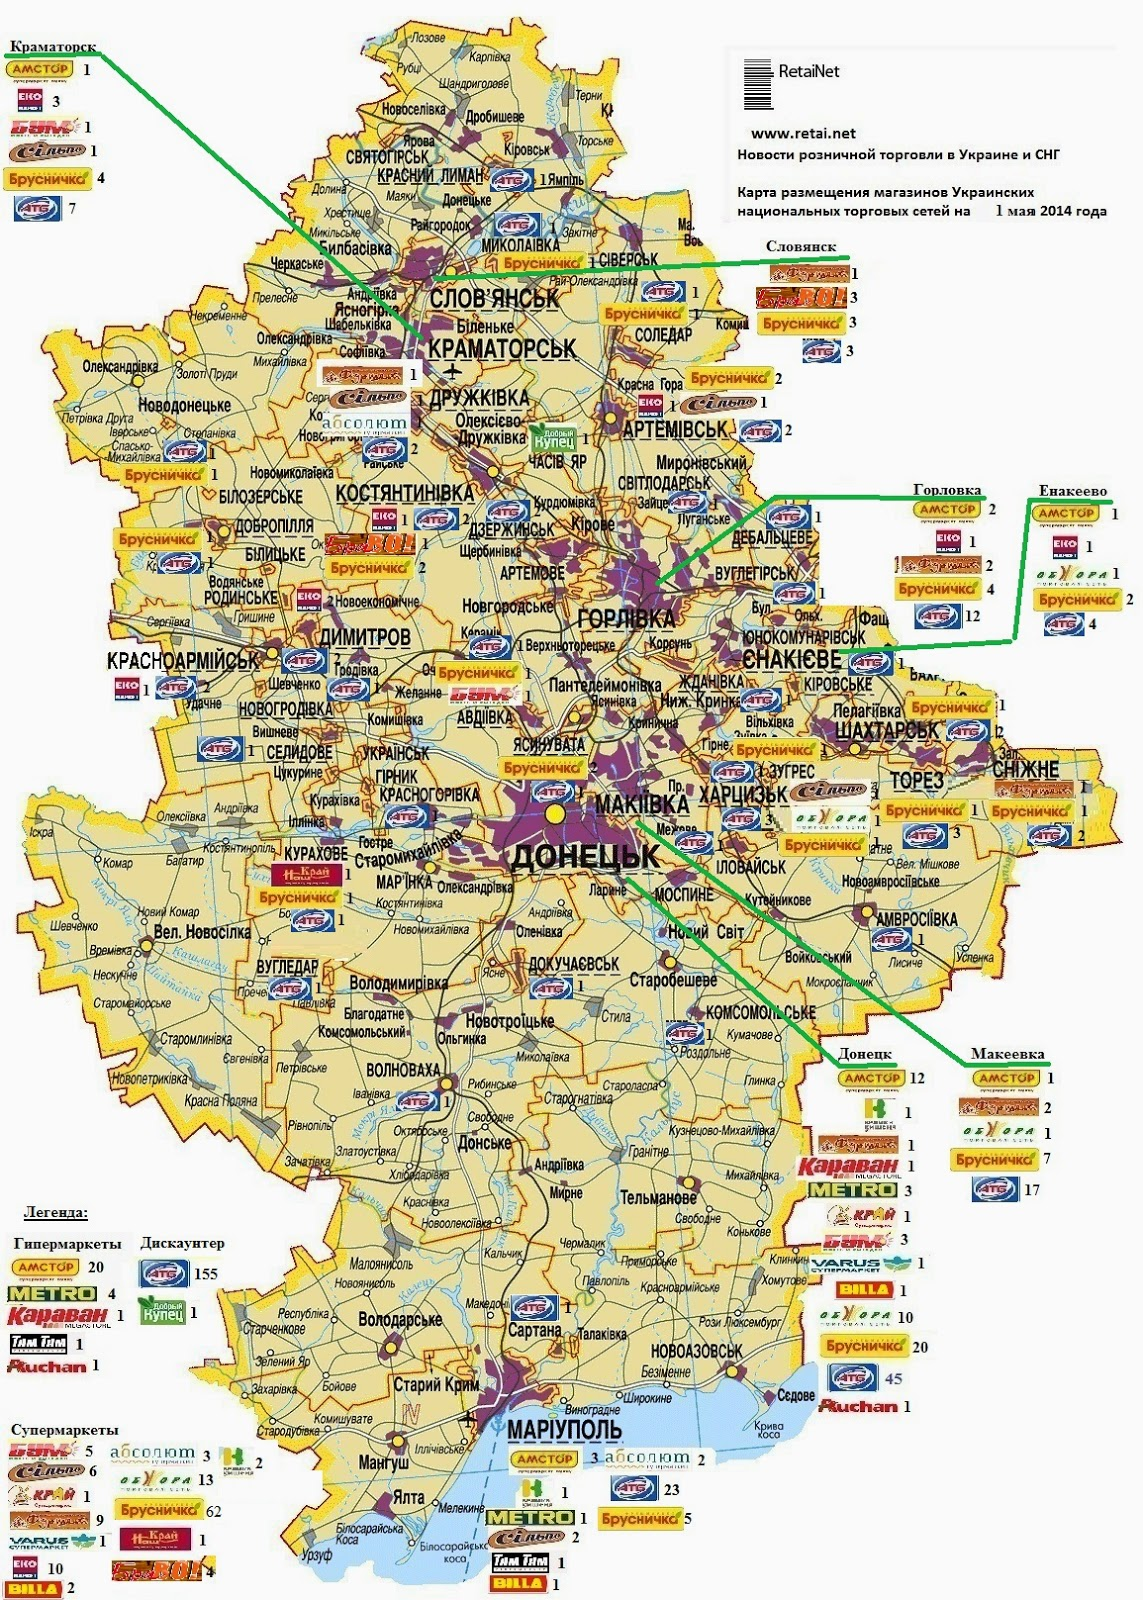 map disengagement ukrainian armed forces and separatists in donbas